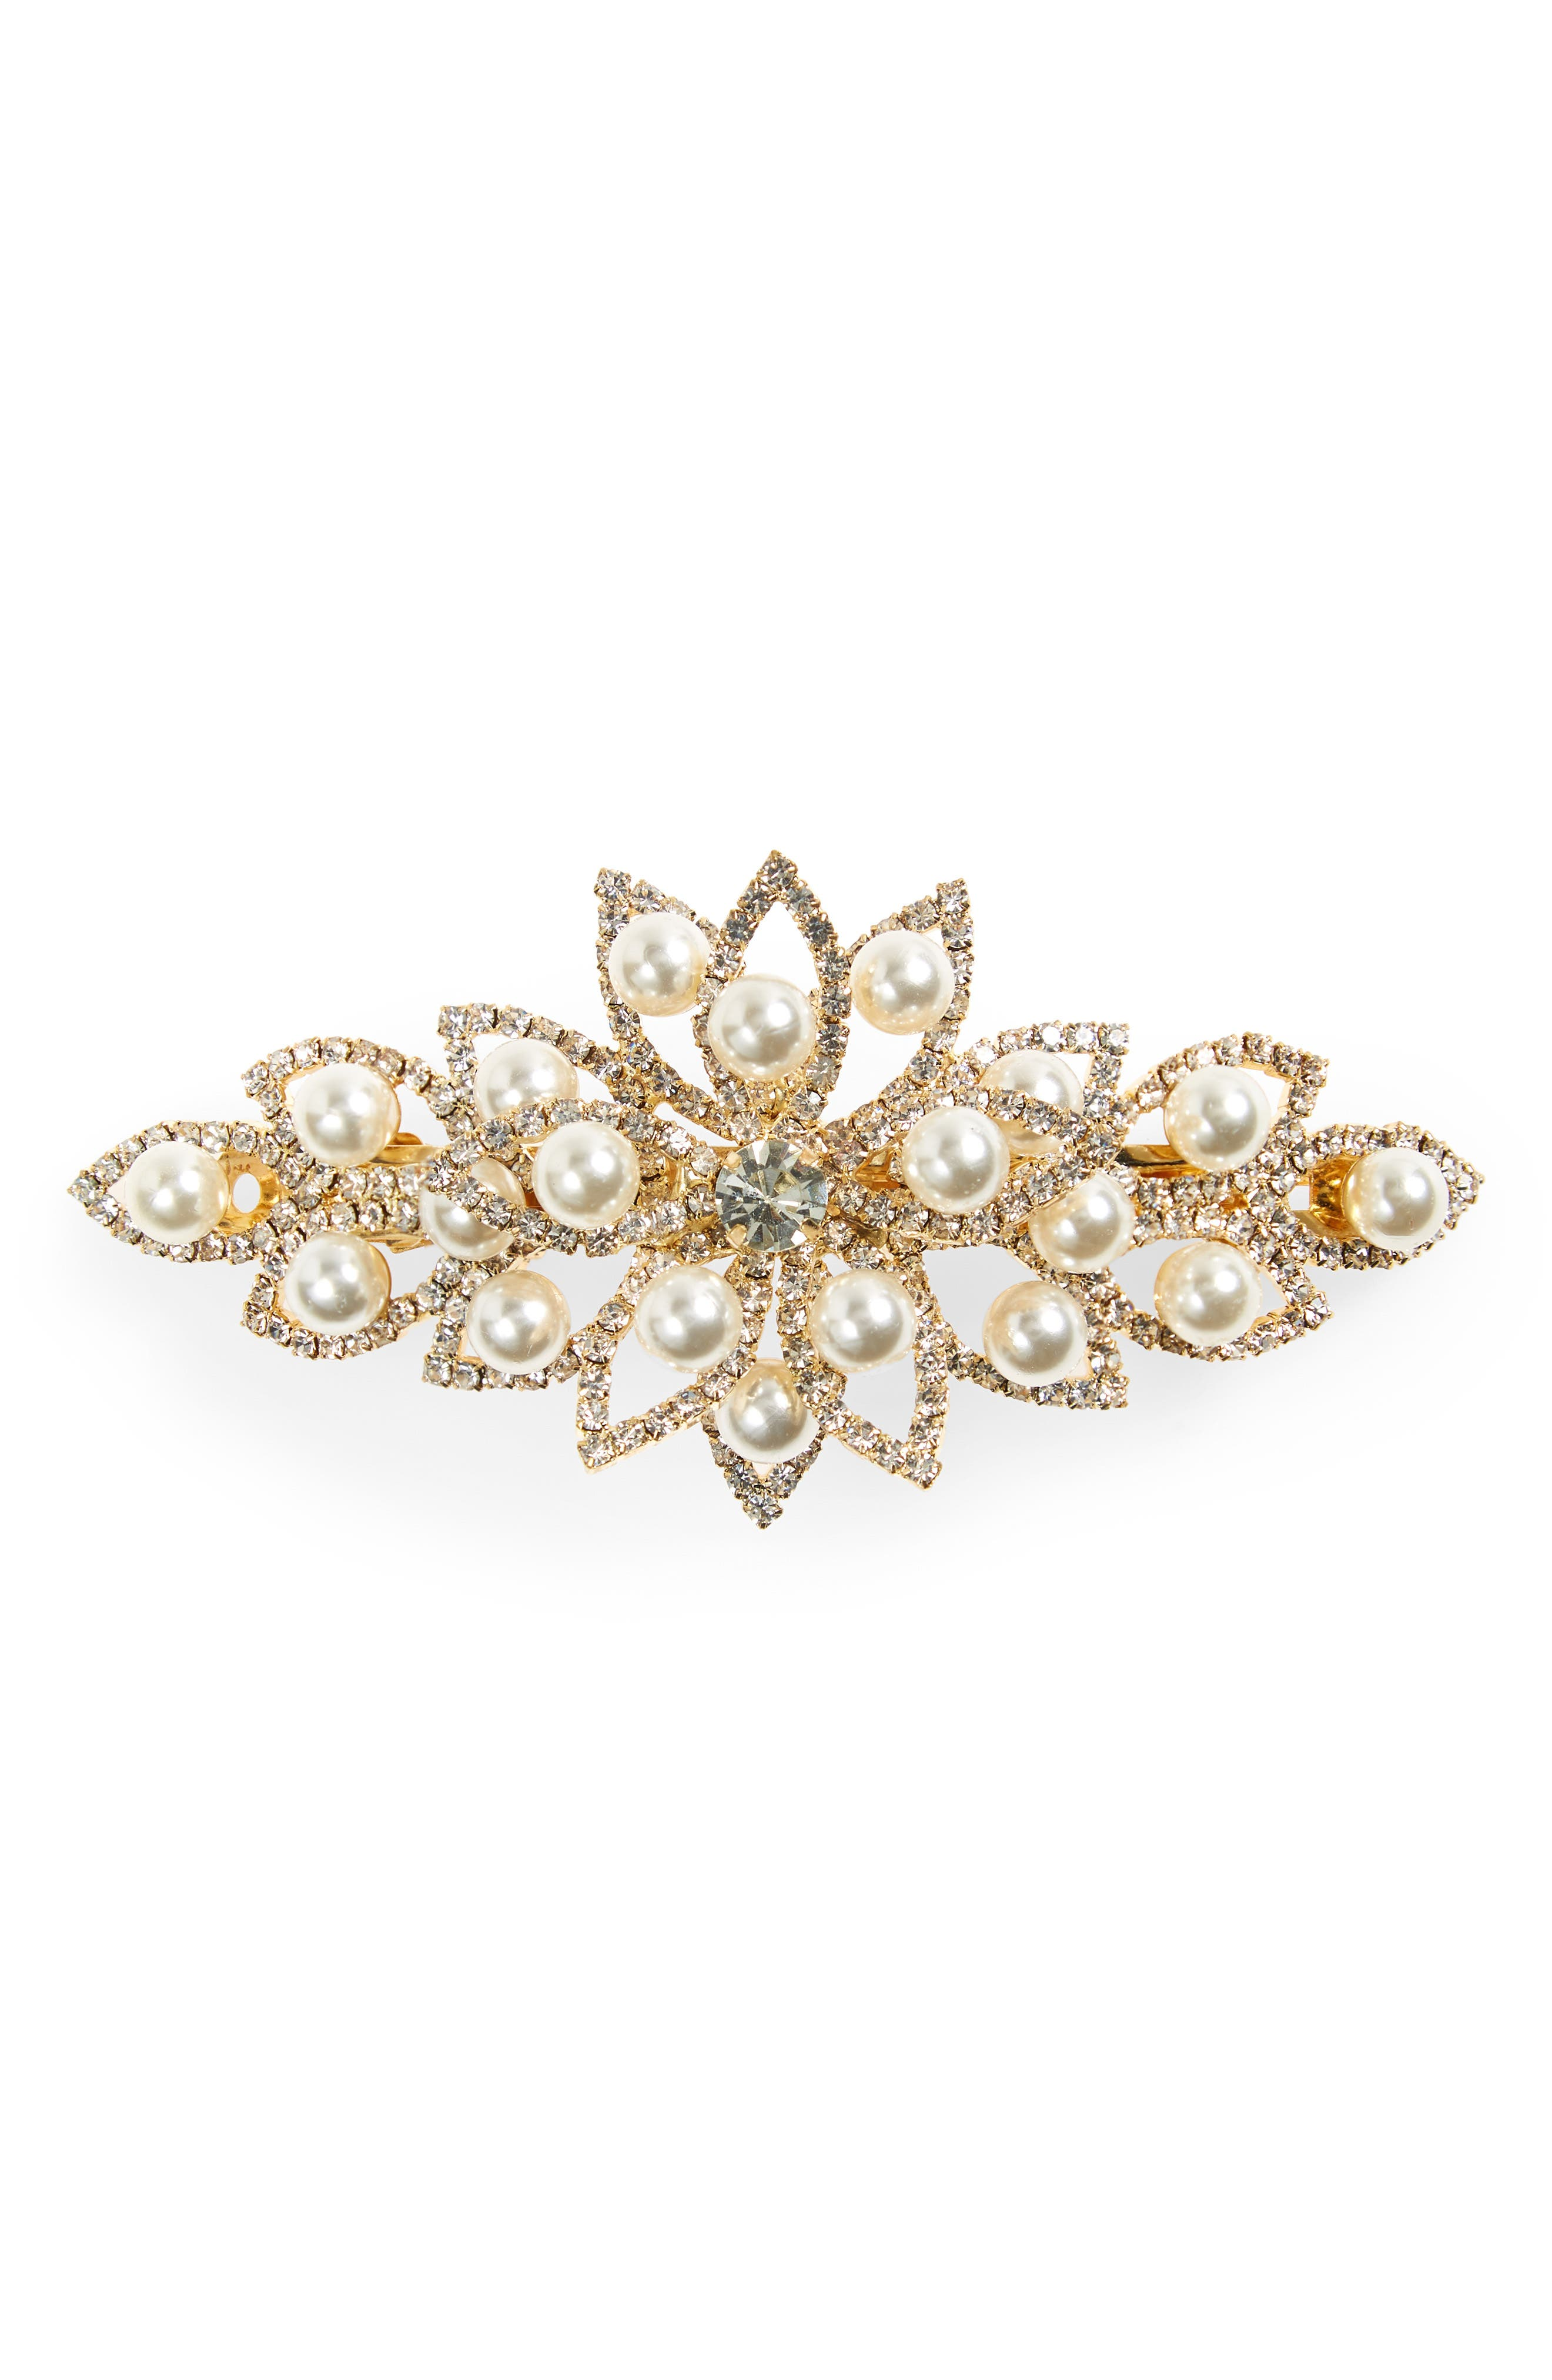 1920s Accessories | Great Gatsby Accessories Guide Tasha Crystal  Imitation Pearl Barrette $19.20 AT vintagedancer.com